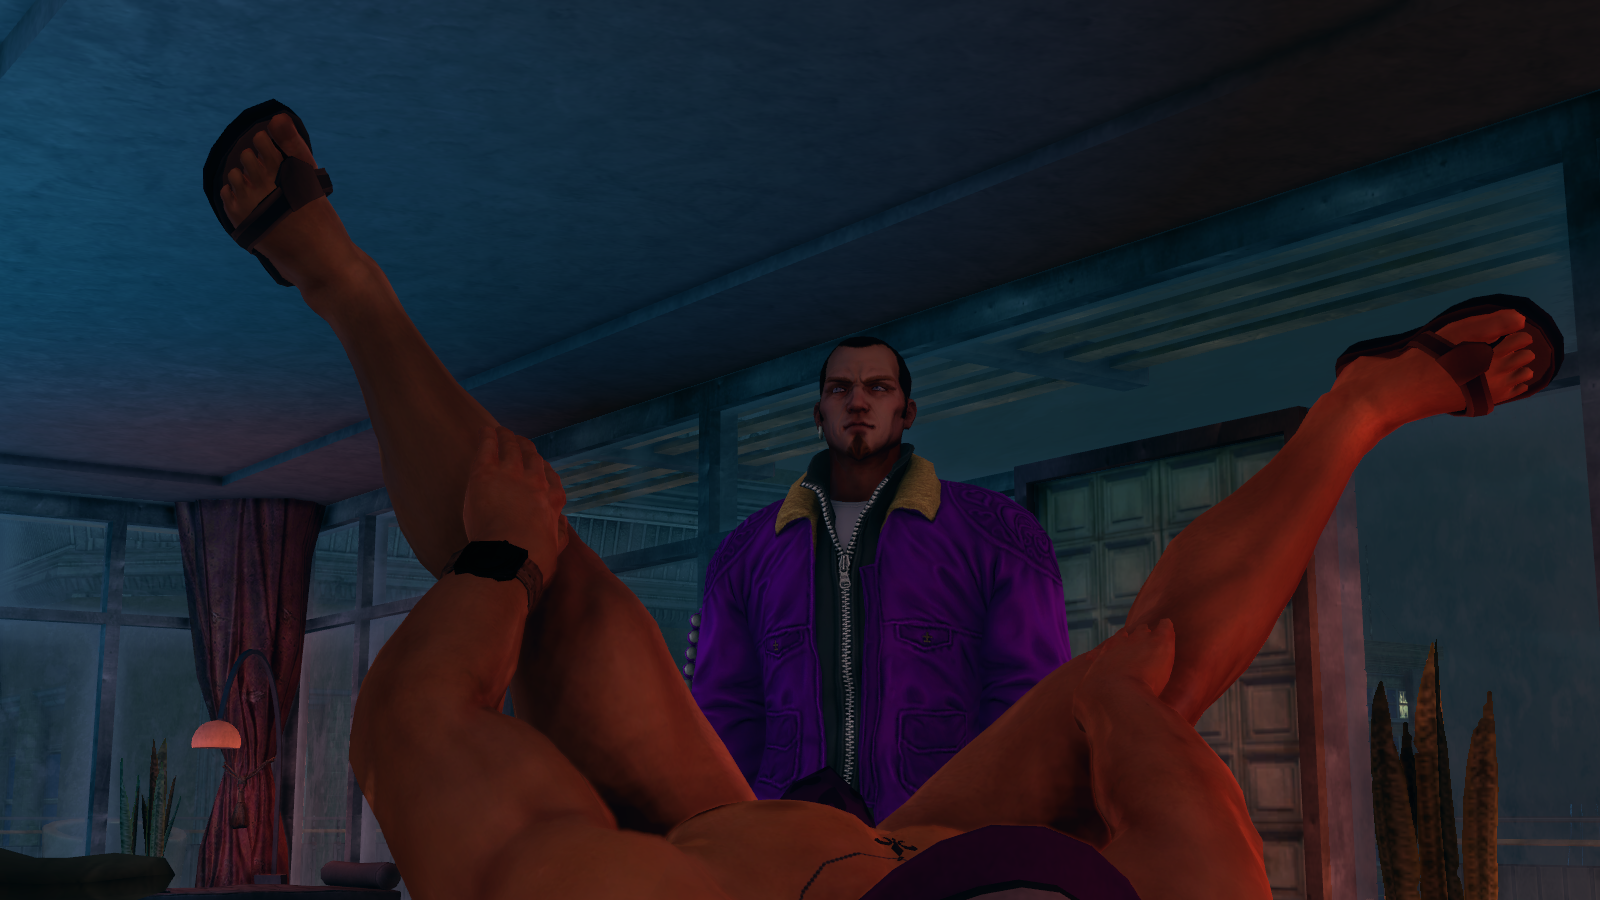 Порно мод к saints row 3